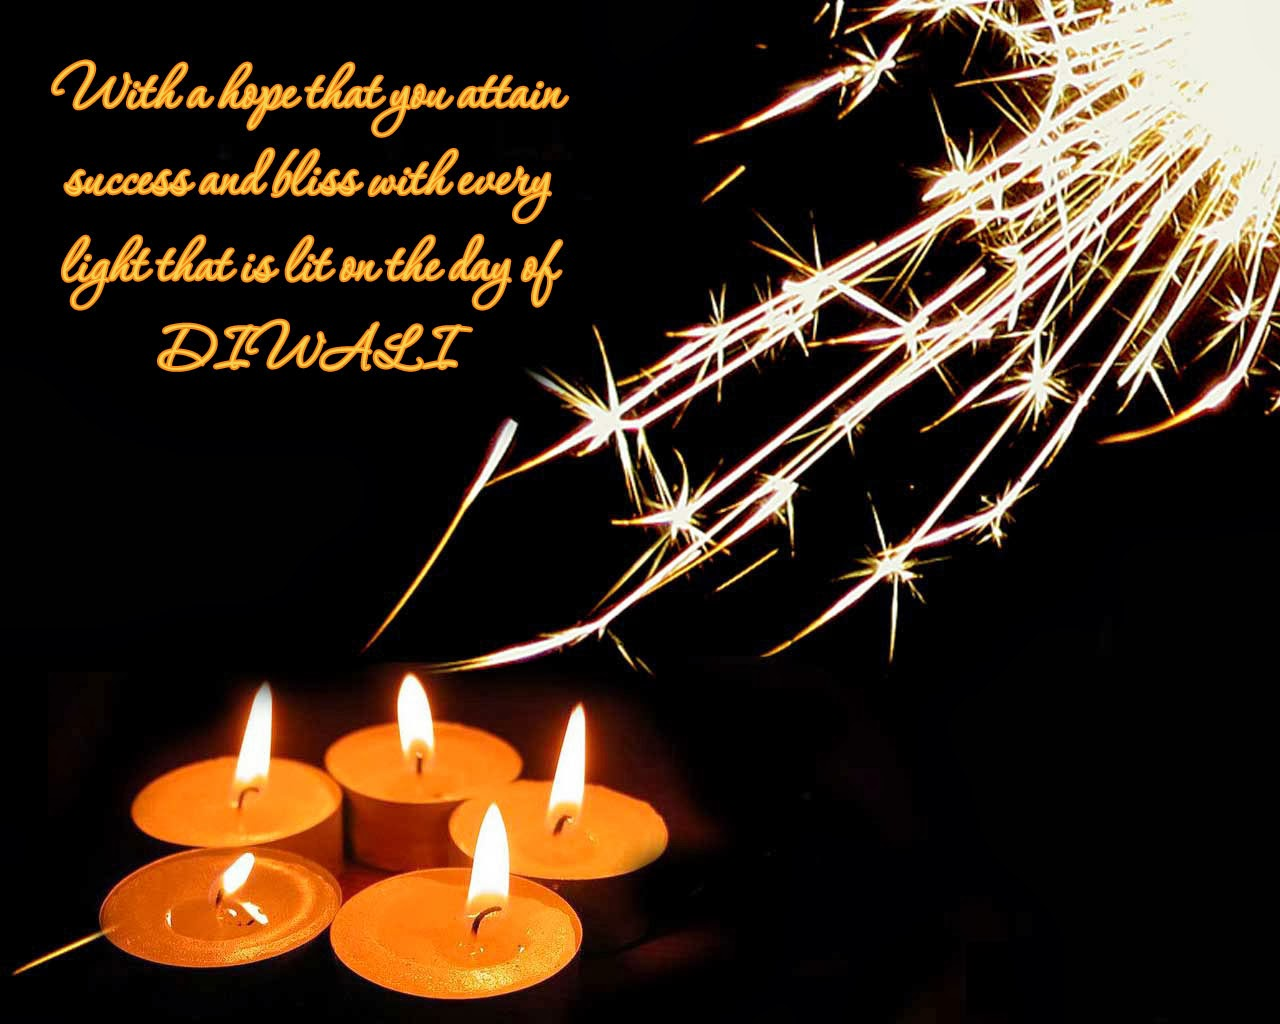 12 top quotes image of happy diwali 2017 quotes sms quotes quotes image of happy diwali 2017 kristyandbryce Images